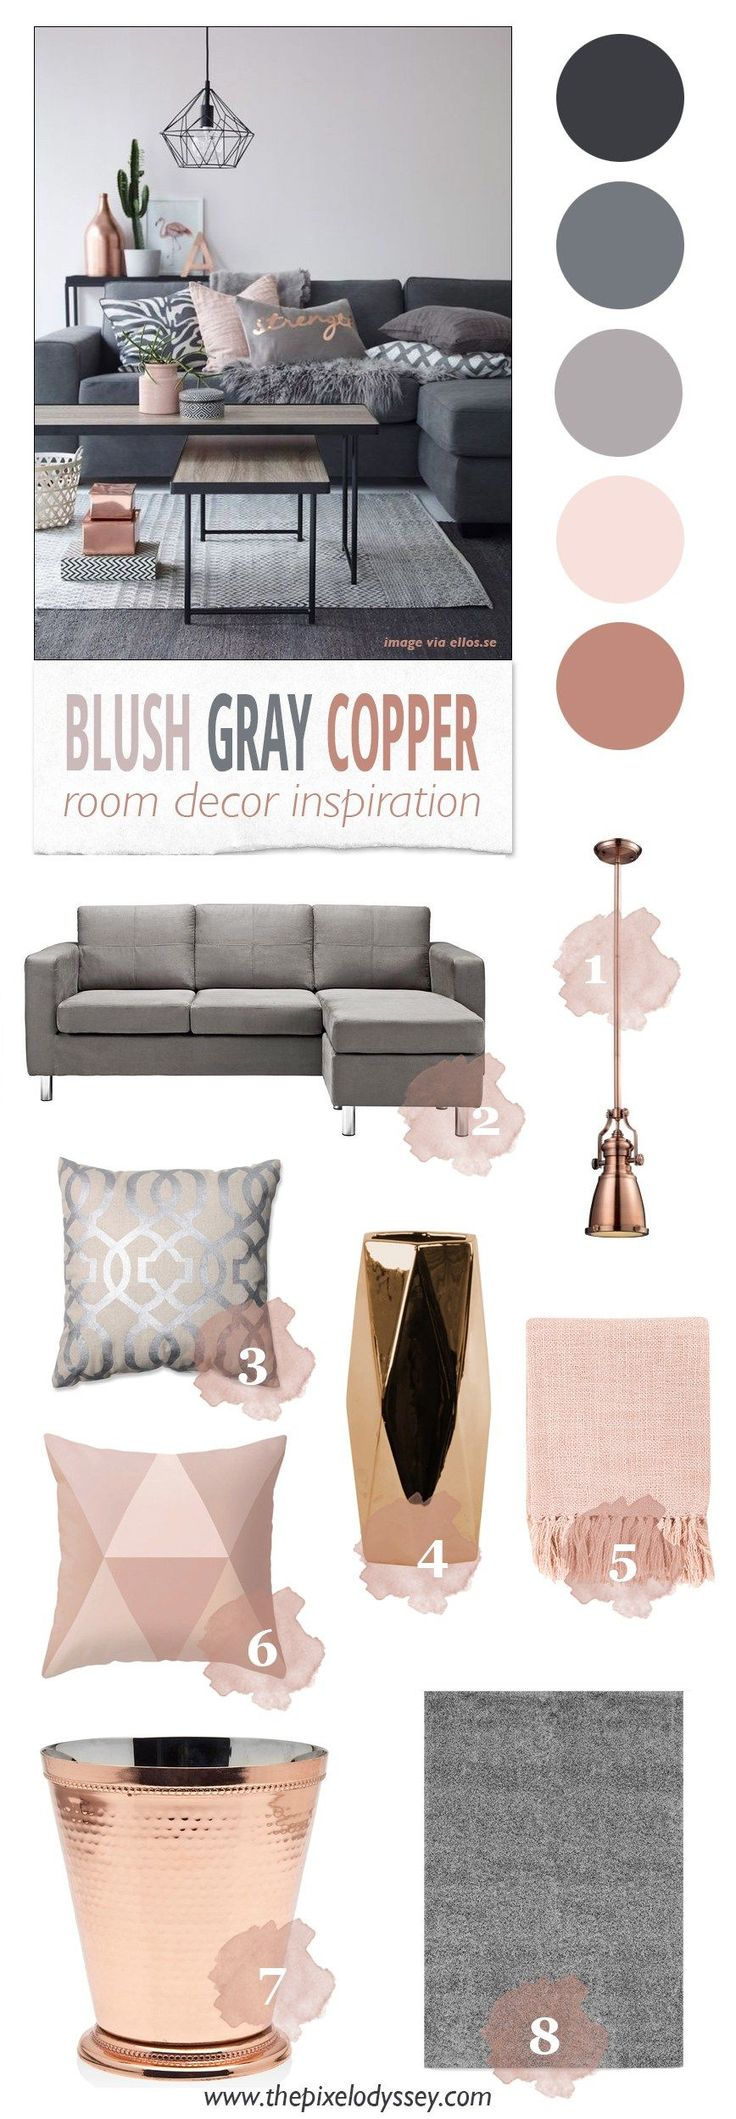 Blush Gray Copper Room Decor Inspiration Apartment Color